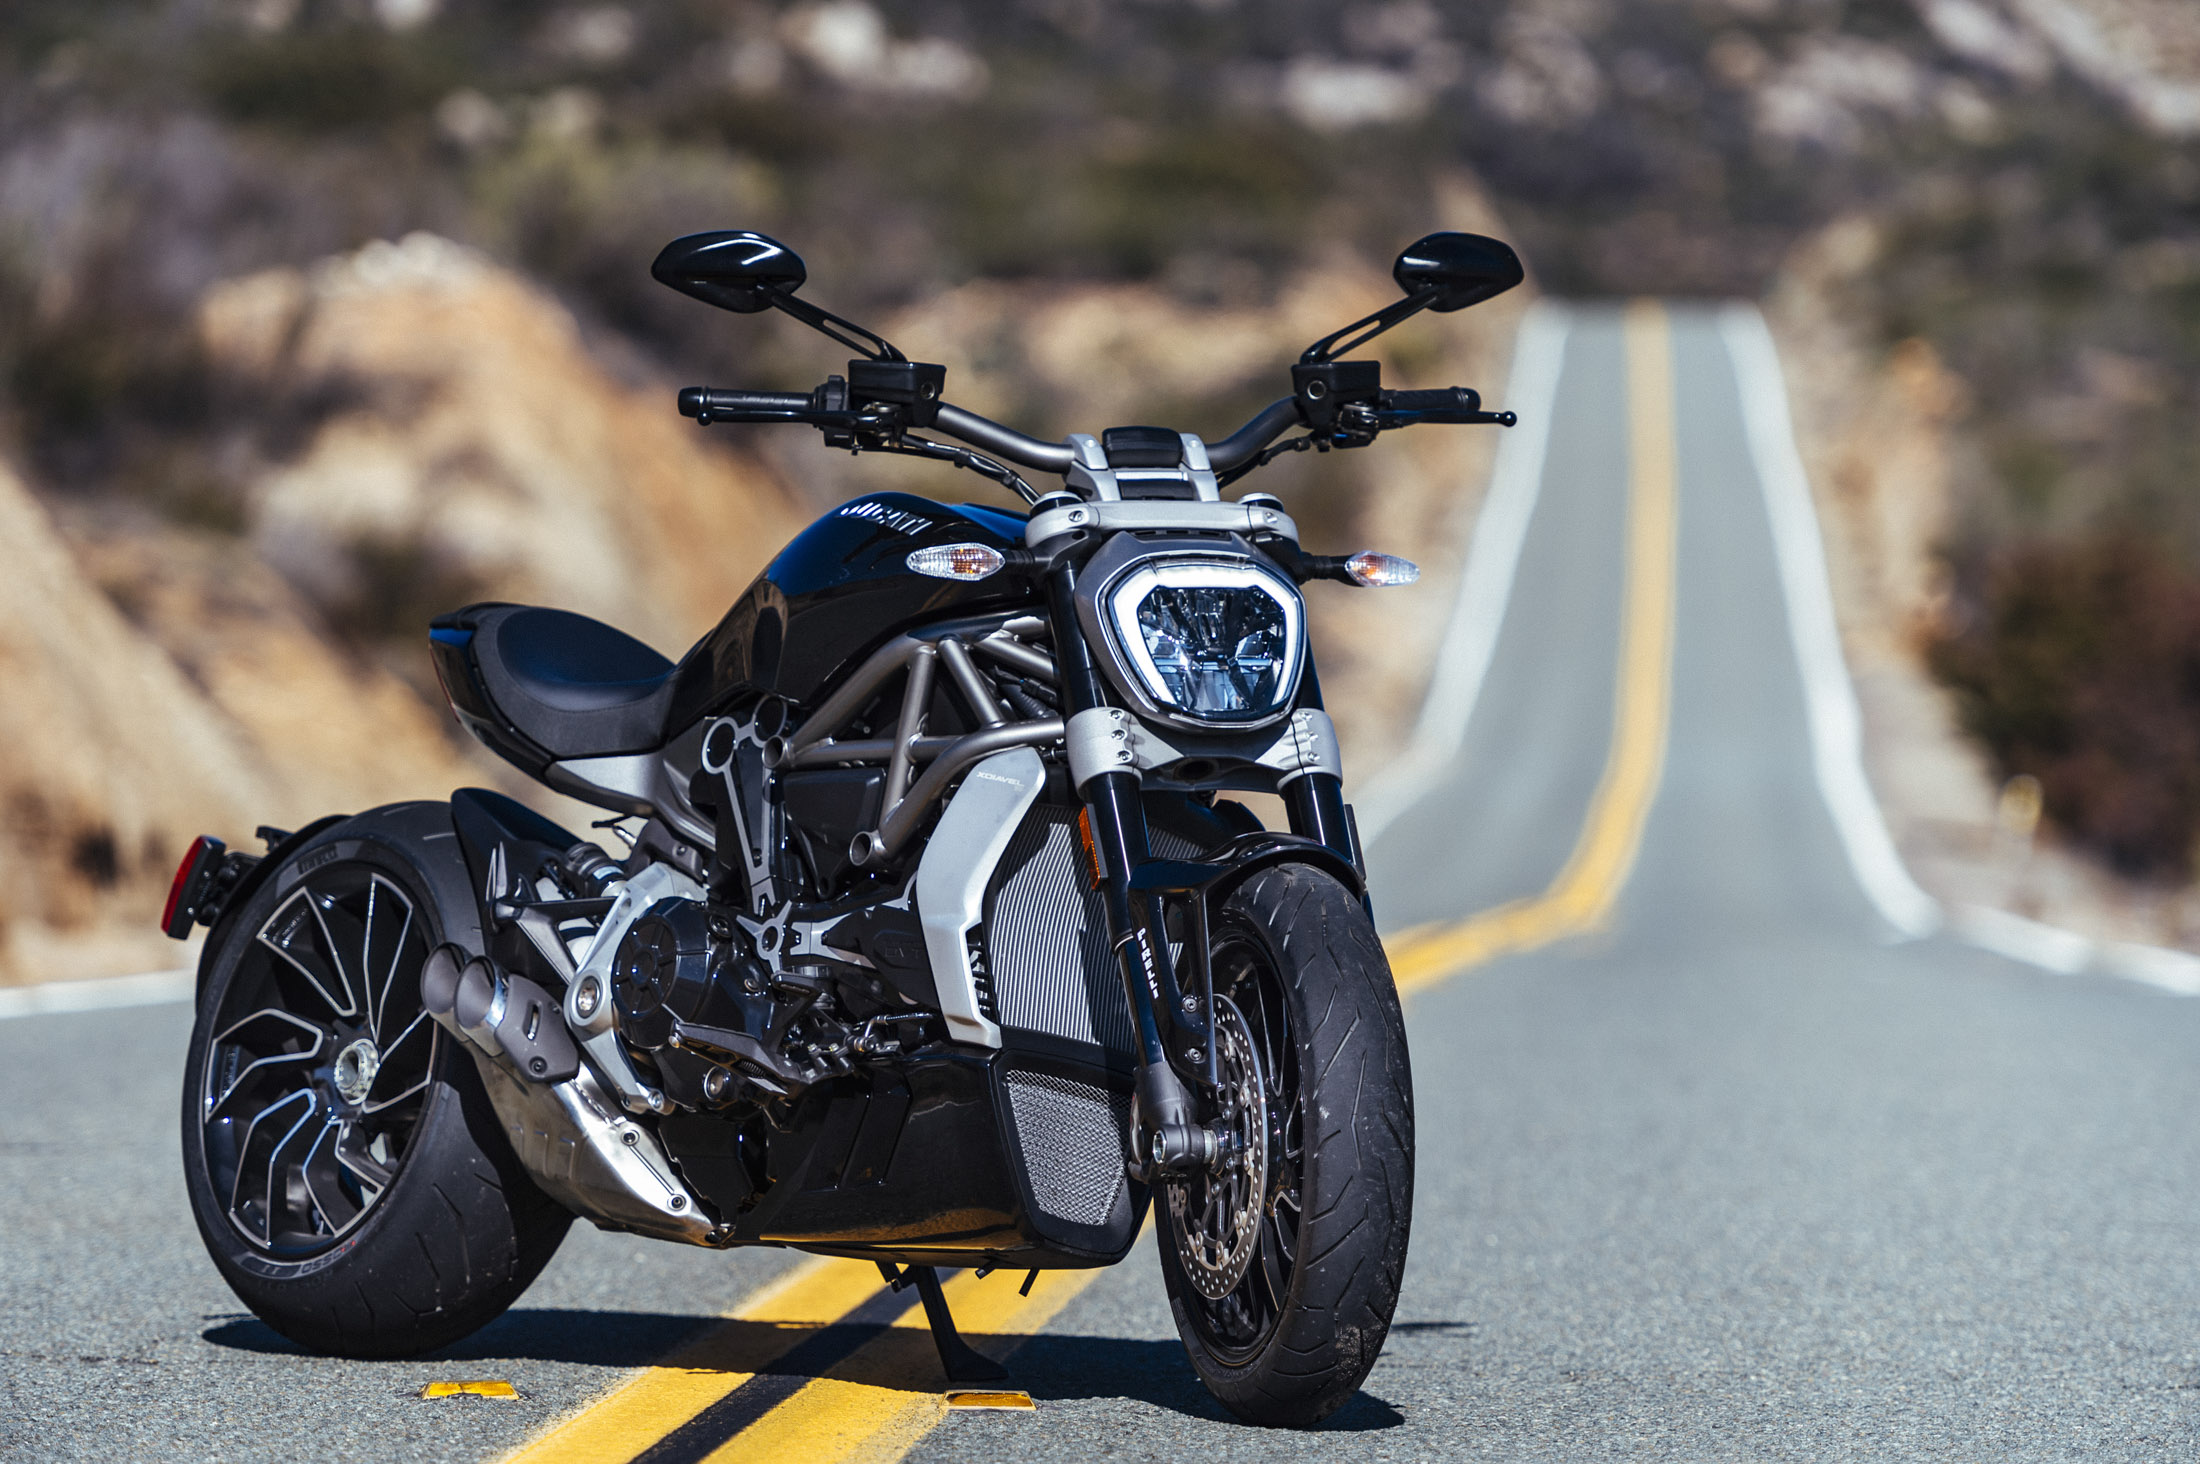 The Ducati XDiavel is the Italian superbike maker's first feet-forward cruiser. Source: Ducati